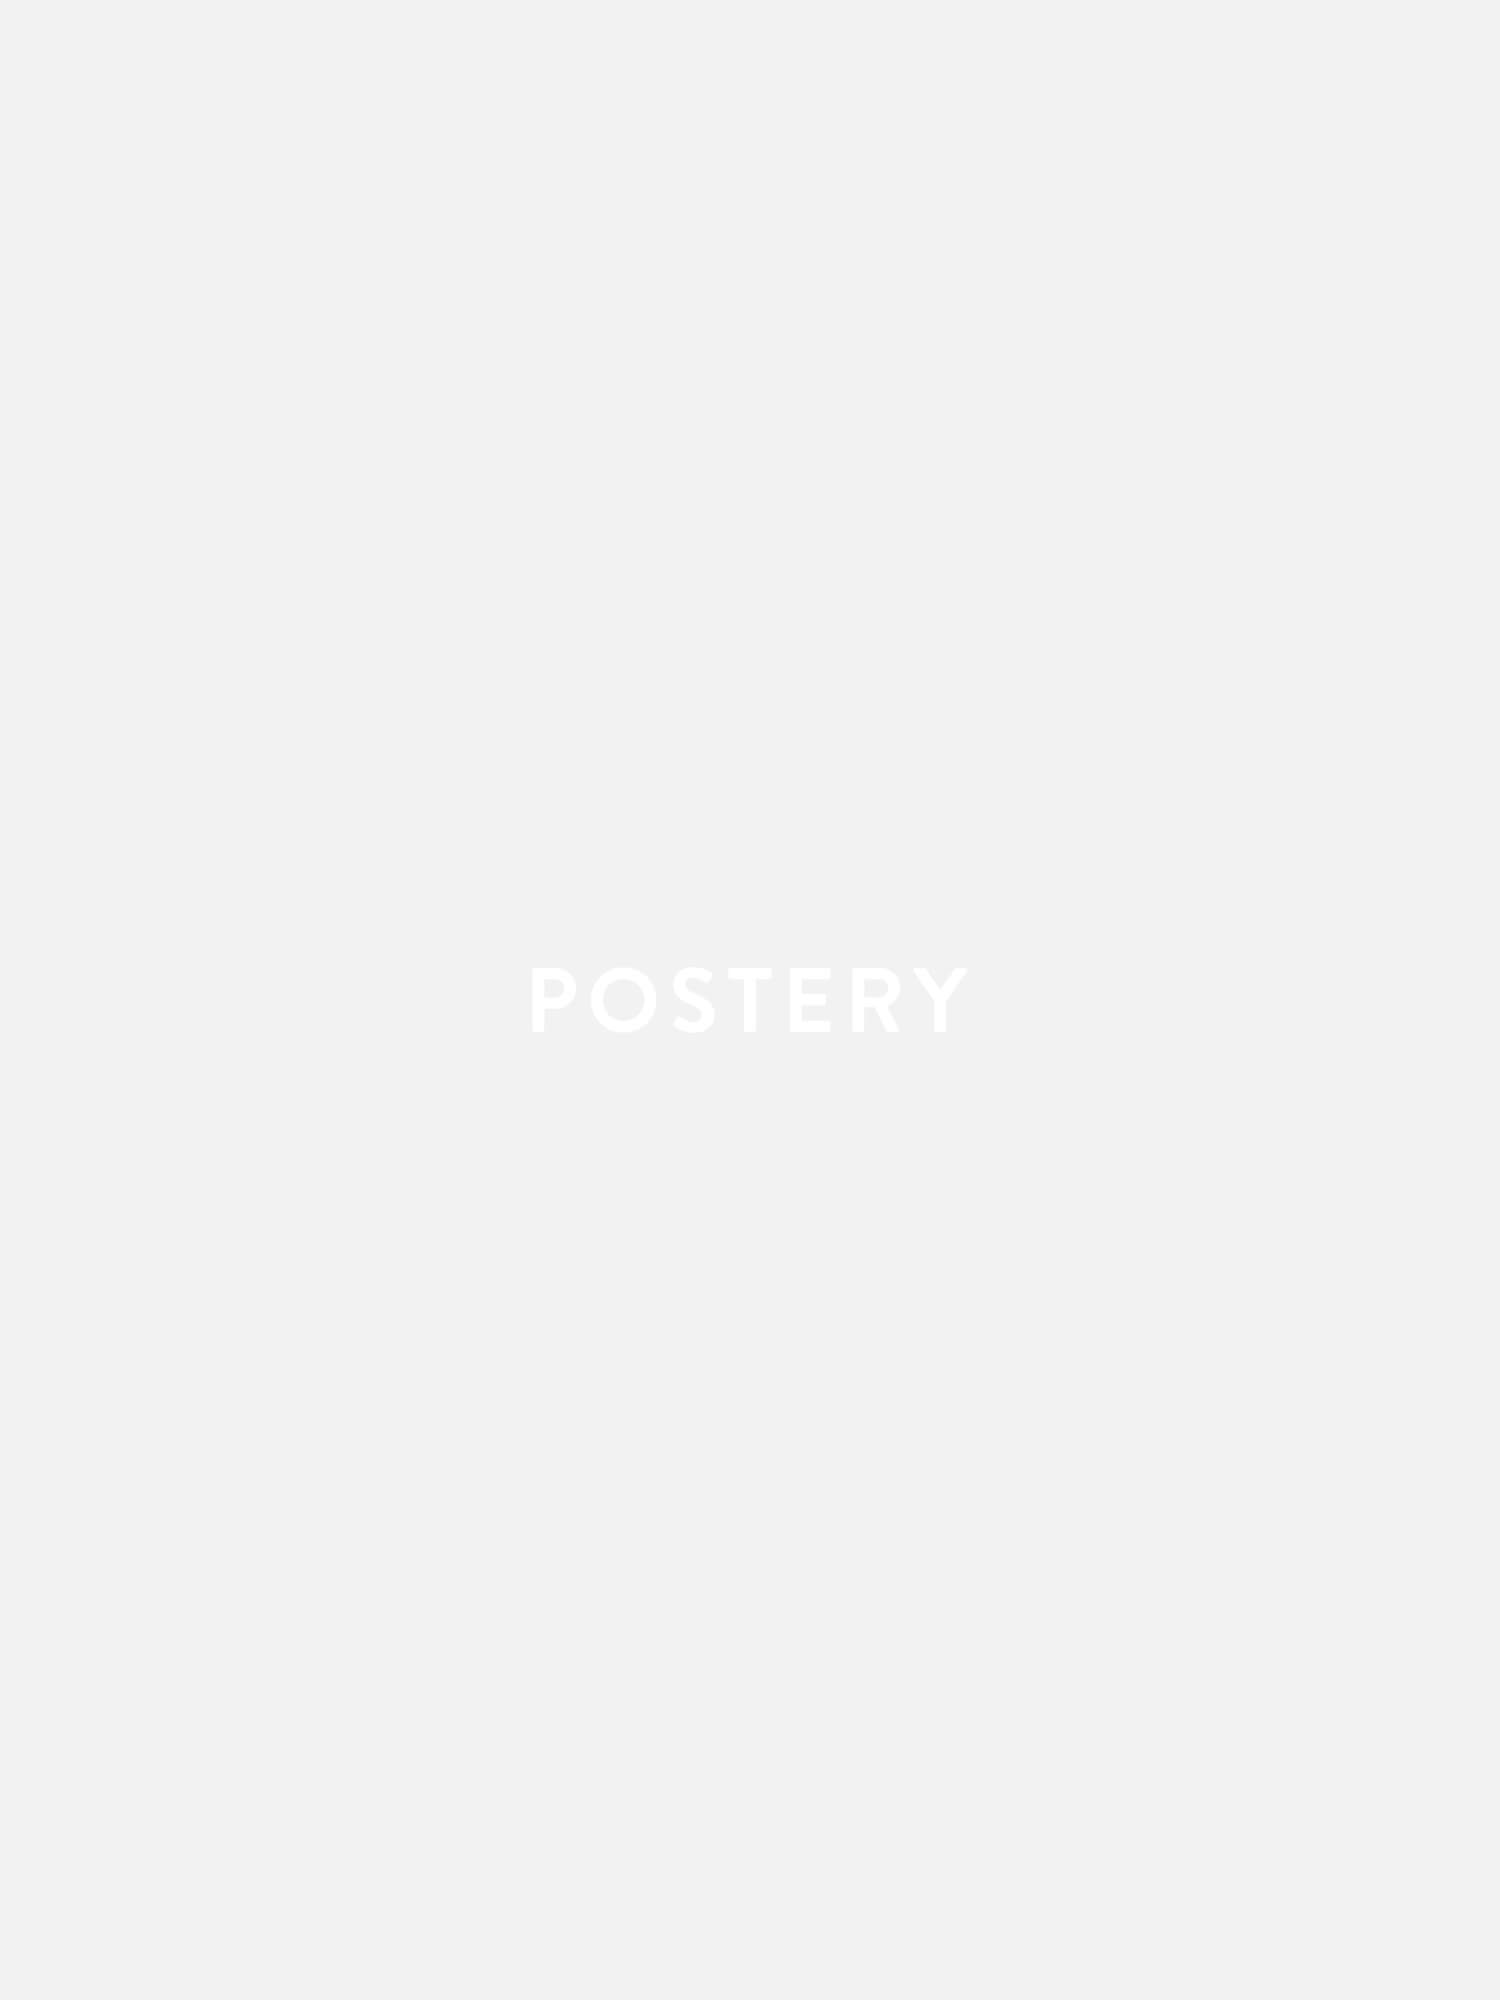 Boat in Bay Poster